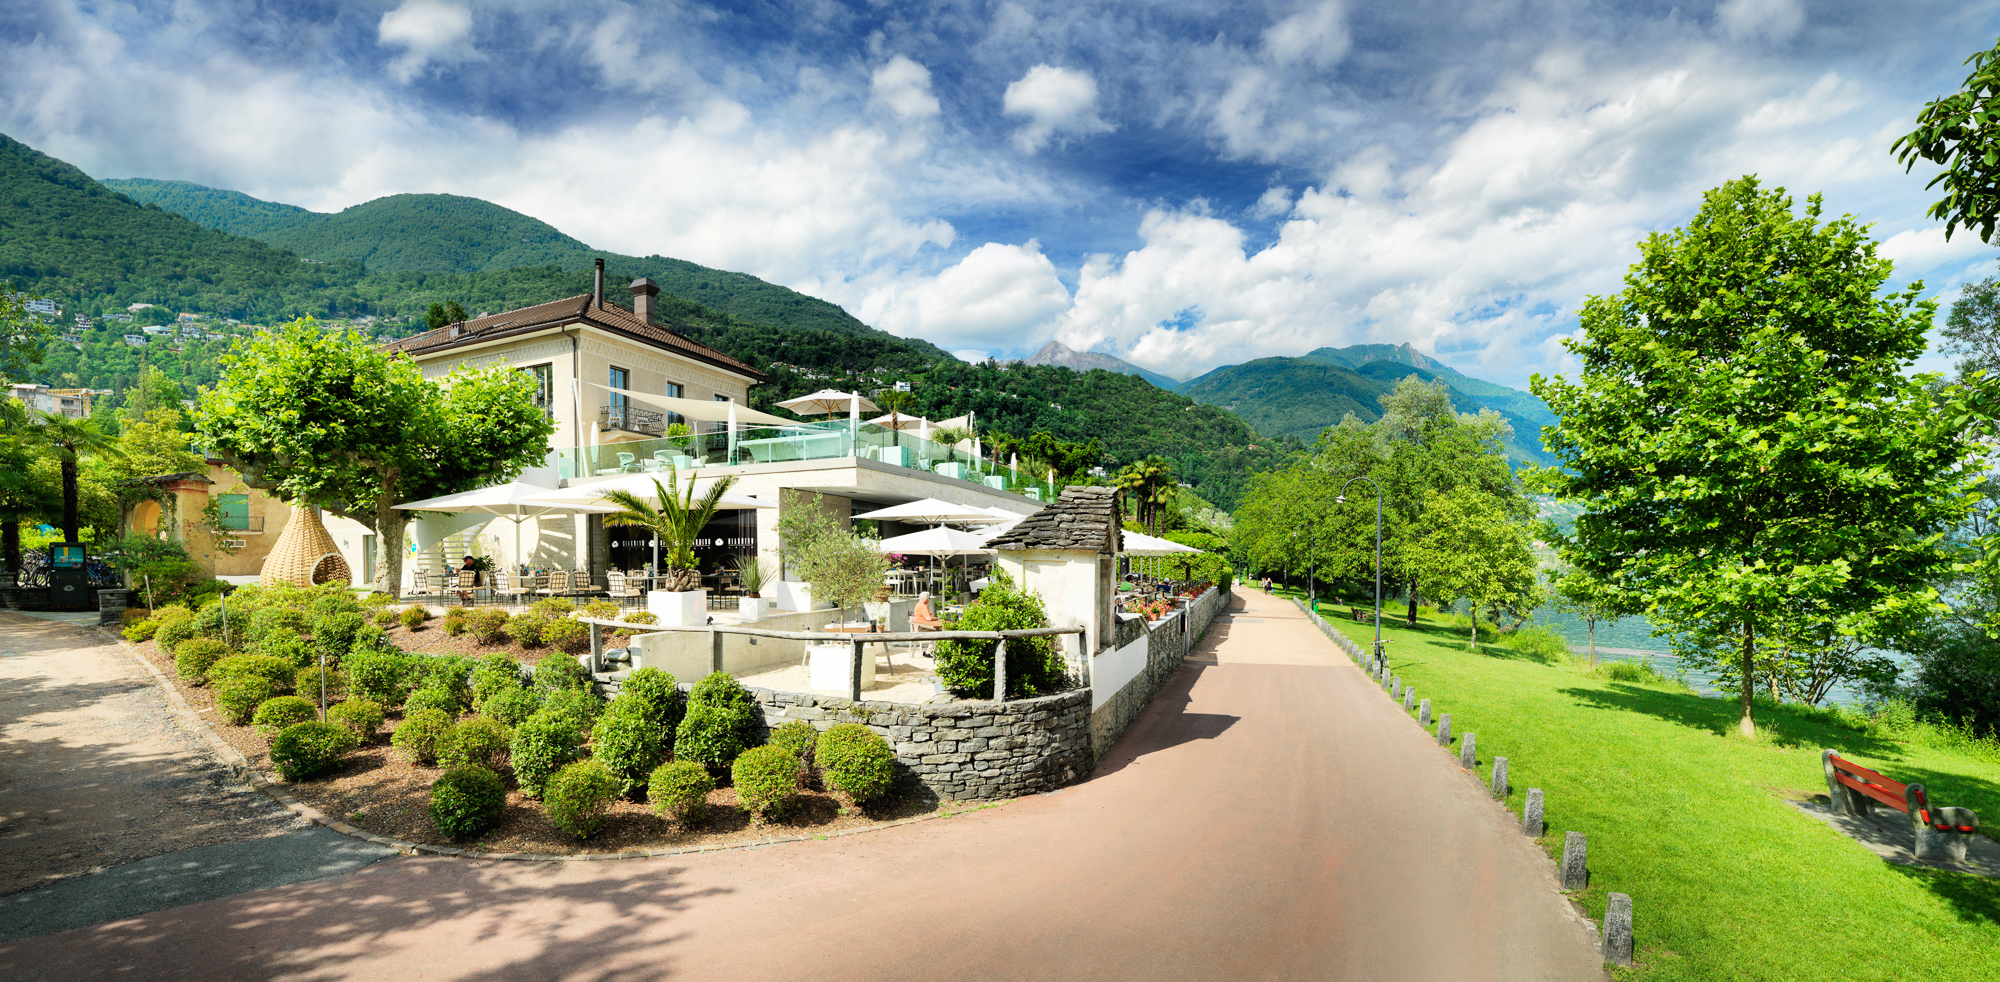 Hotel giardino mountain engadine 39 s power retreat for Design hotel tessin